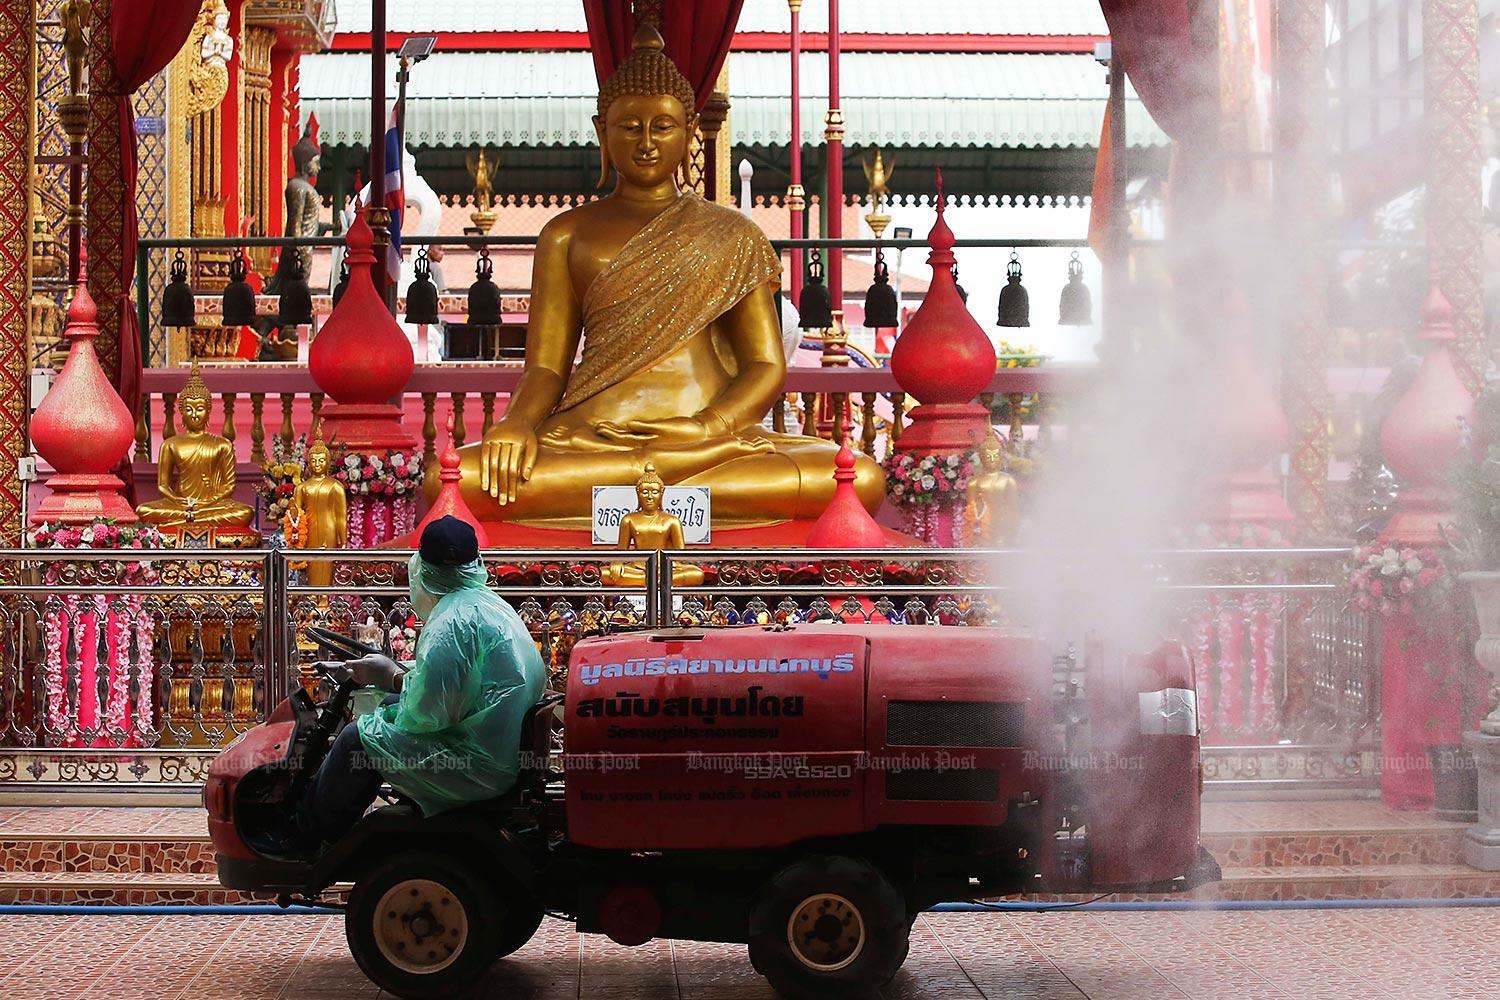 A worker operates a vehicle to spray disinfectant around Wat Ta Khien and the adjacent floating market in Bang Kruai district, Nonthaburi, on Wednesday. The cleaning was conducted ahead of Saturday's reopening of the temple and market, closed recently due to the new Covid-19 outbreak. (Photo by Pattarapong Chatpattarasill)